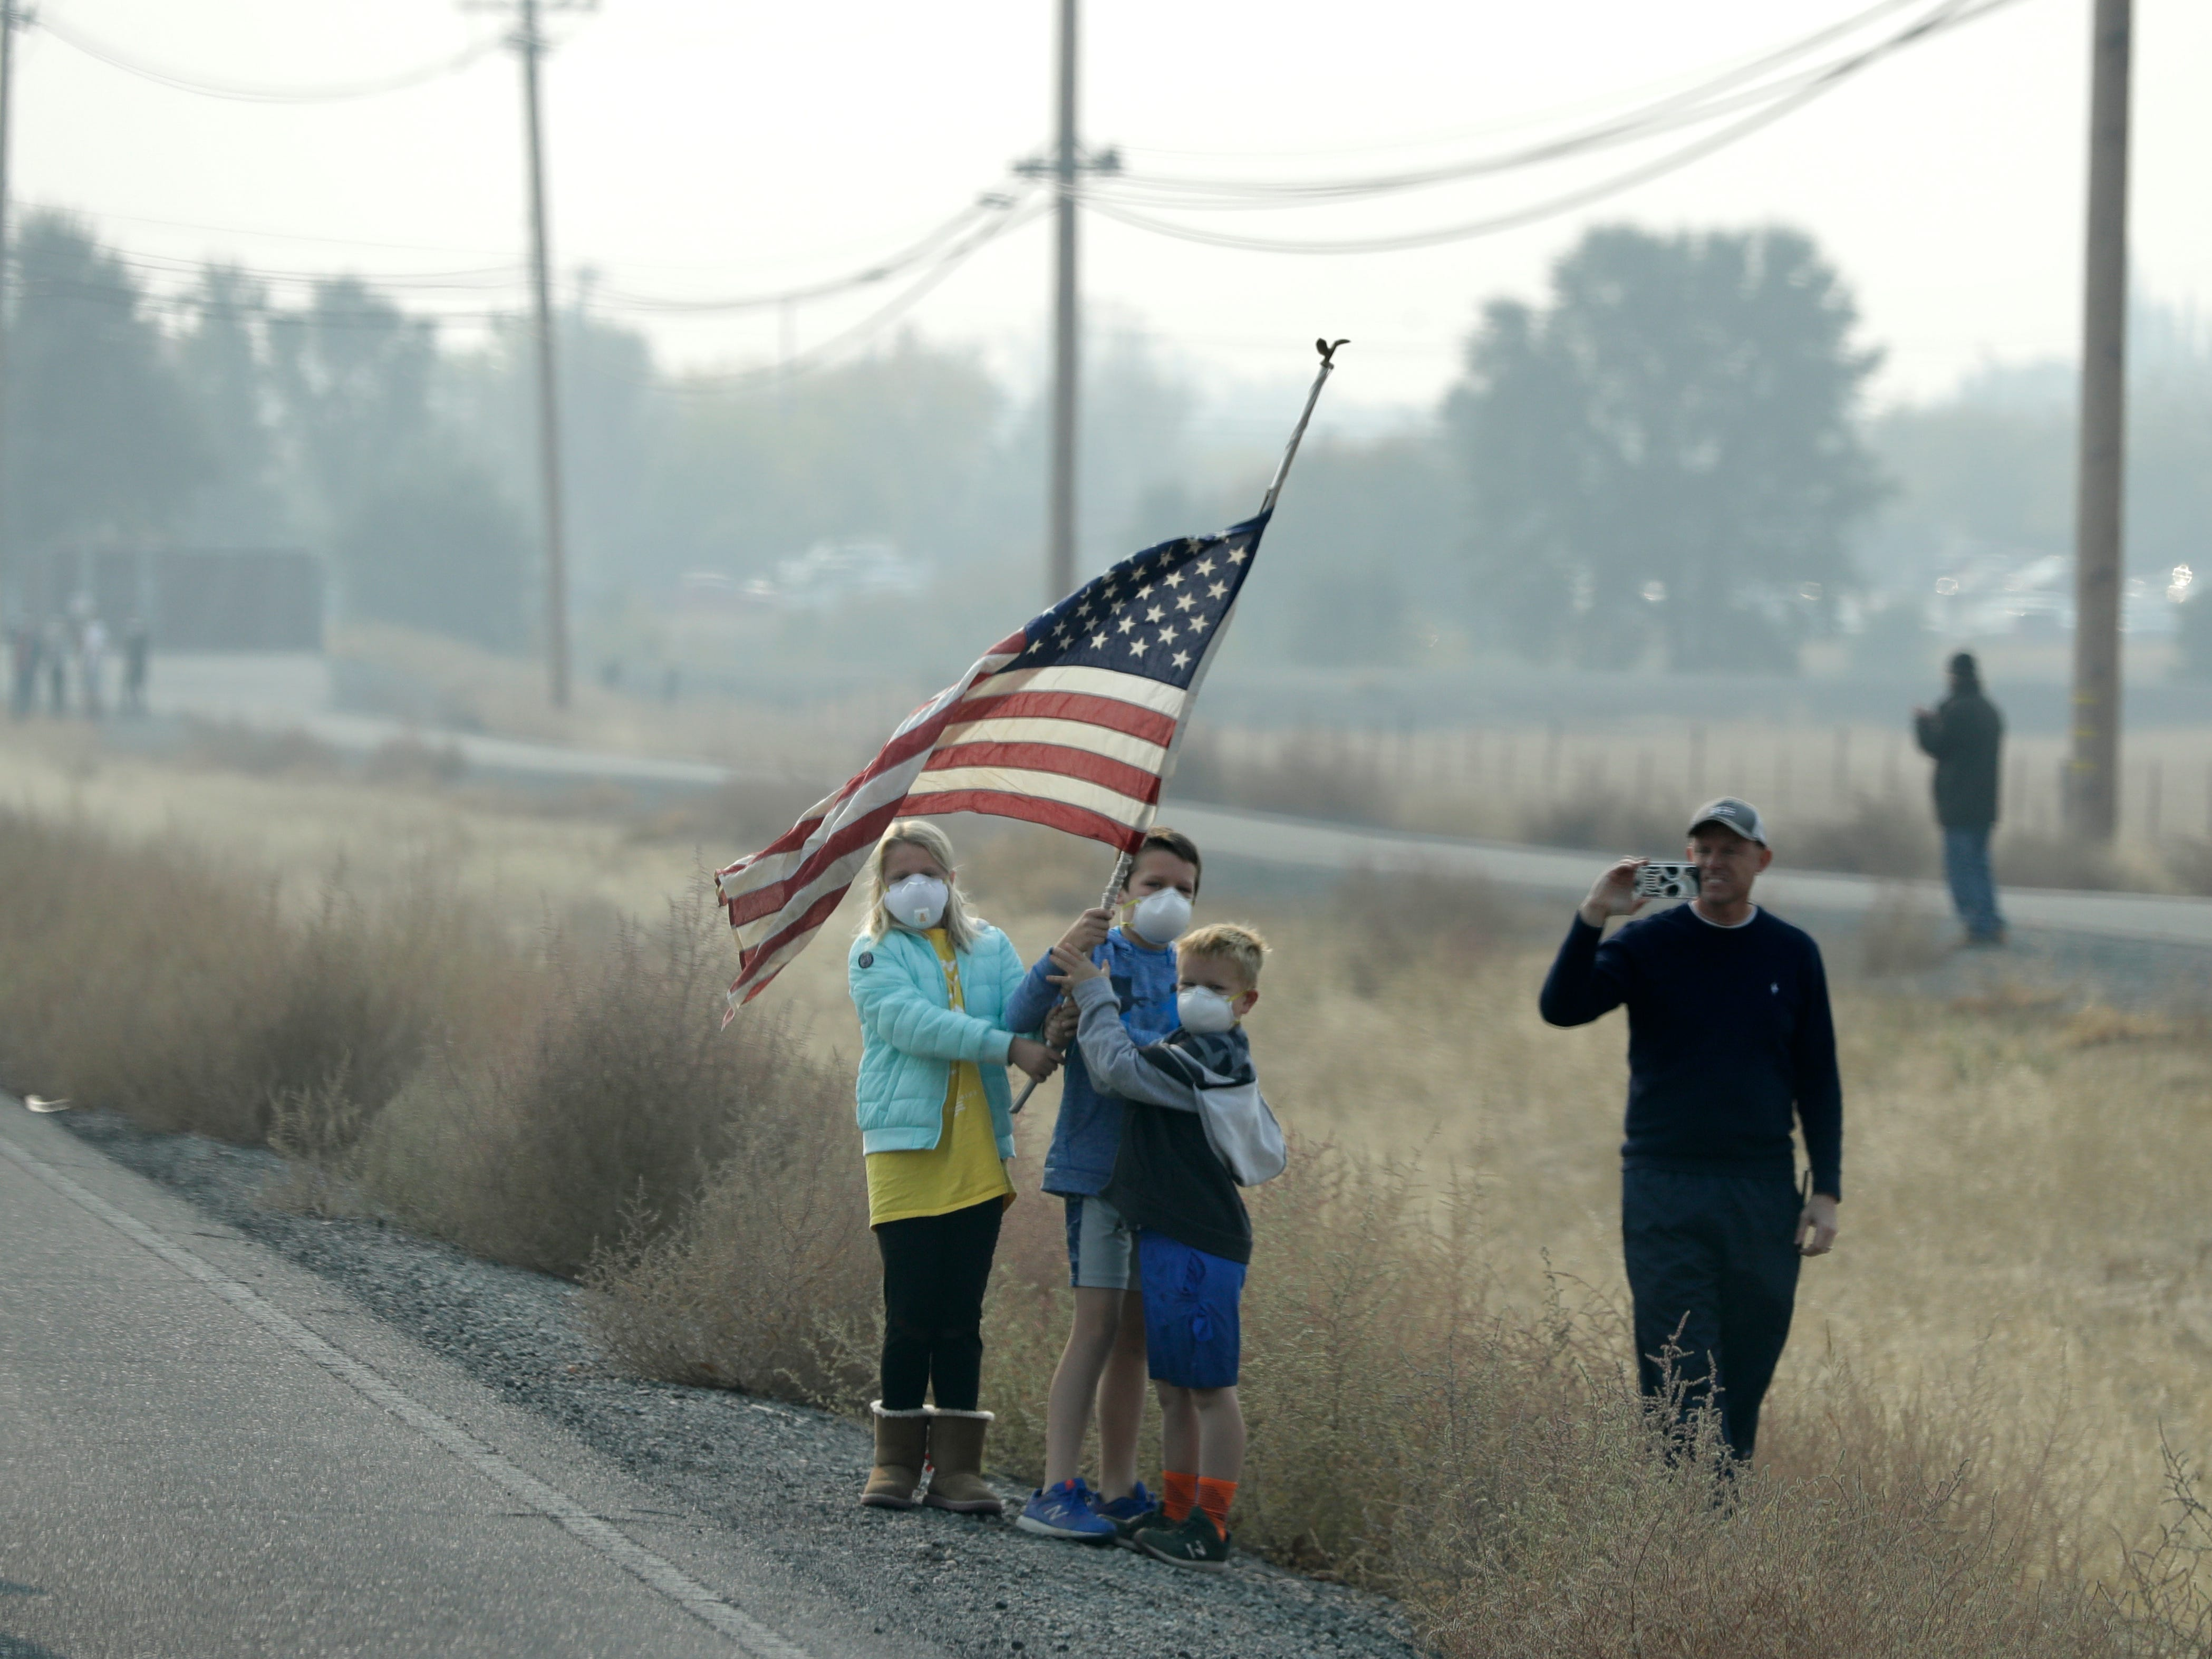 People stand on the side of the road holding an American flag as the motorcade of President Donald Trump drives through Chico, Calif., on a visit to areas affected by the wildfires, Saturday, Nov. 17, 2018. (AP Photo/Evan Vucci)